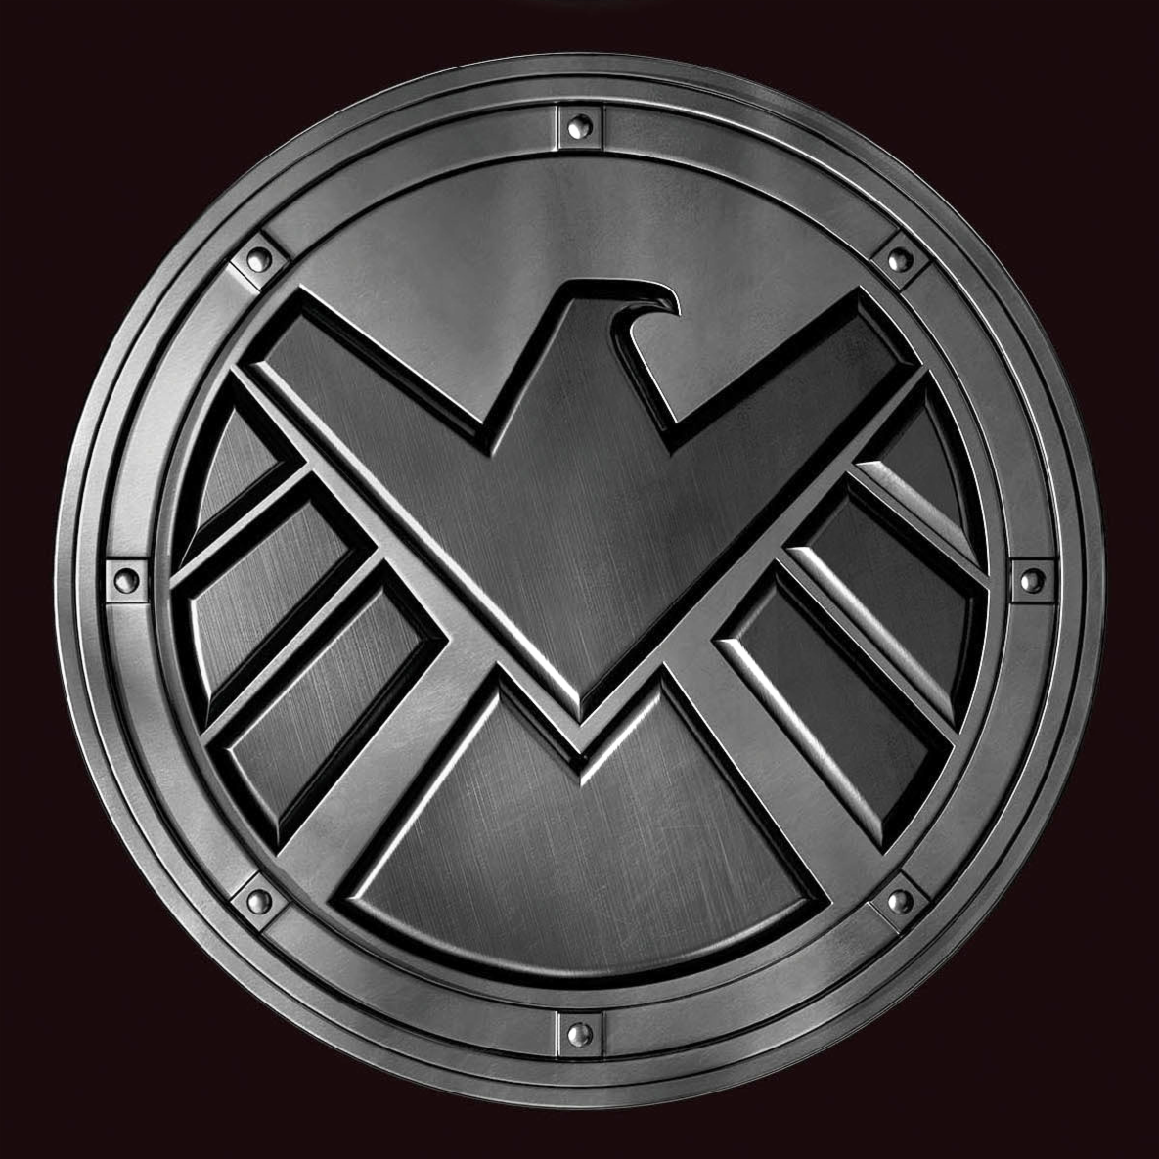 Who founded S.H.I.E.L.D?